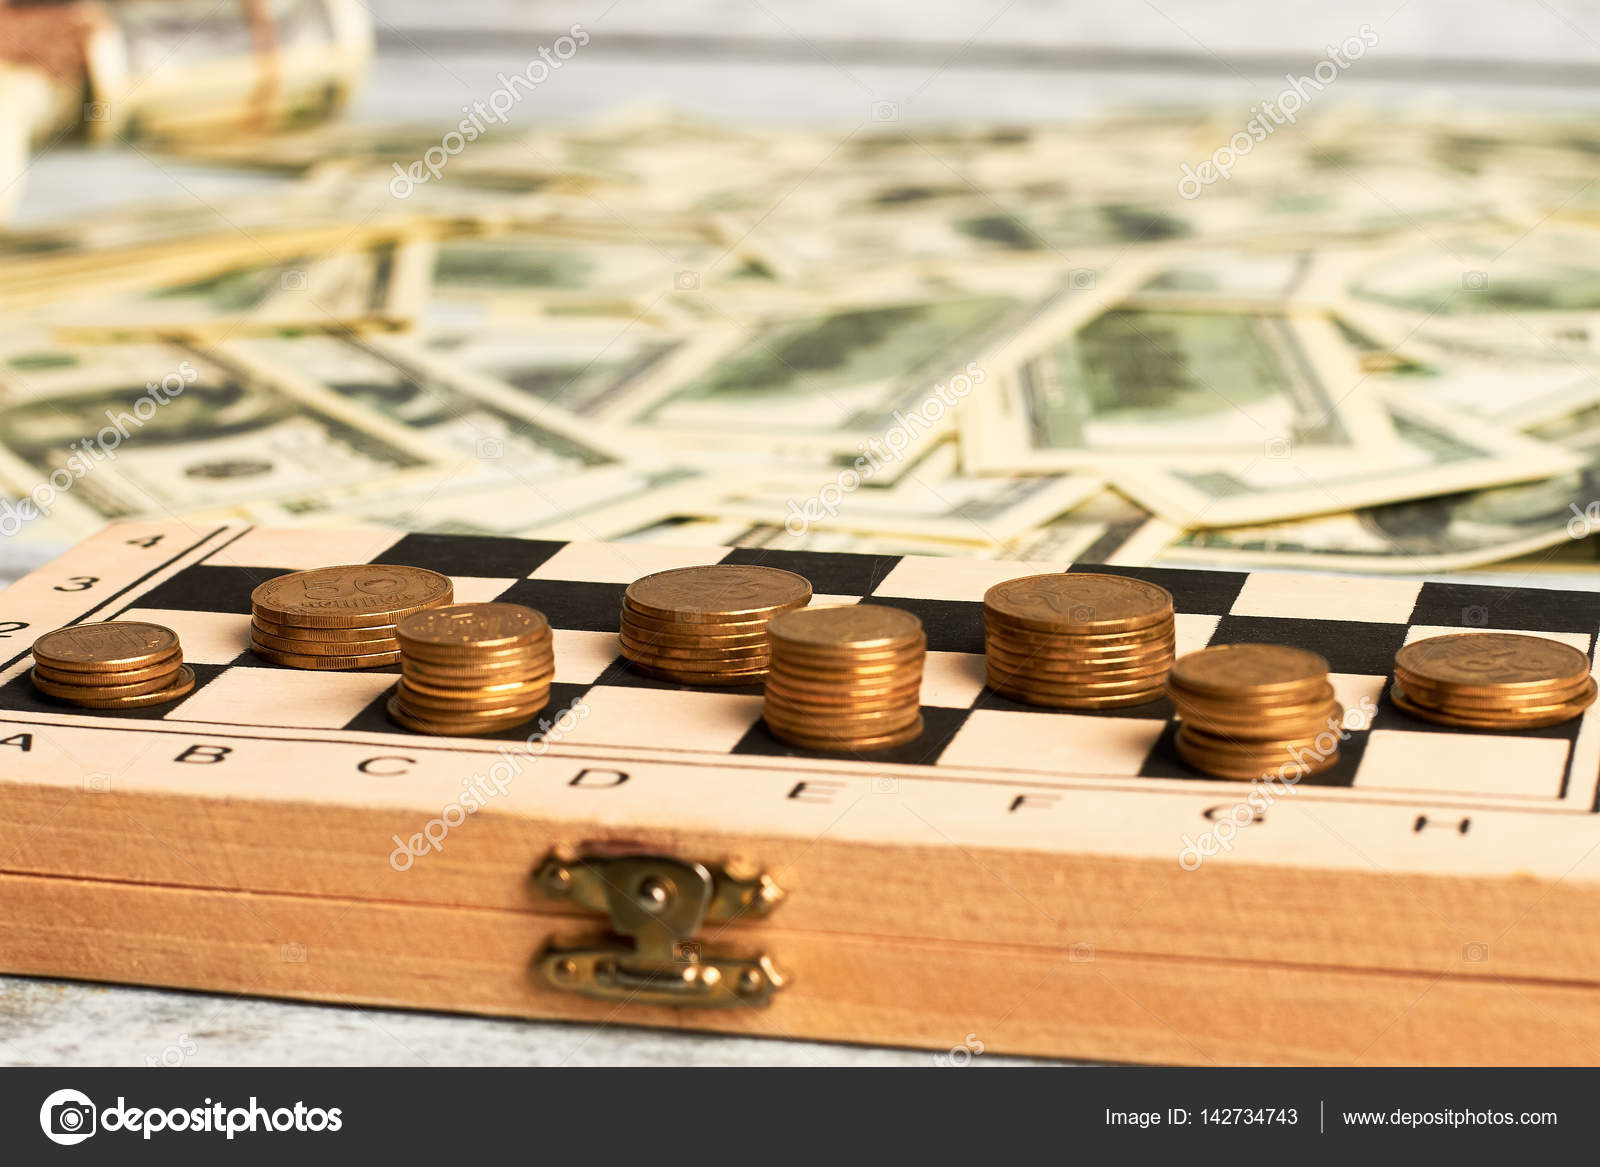 Coins On Chessboard And Dollars Stock Photo C Denisfilm 142734743